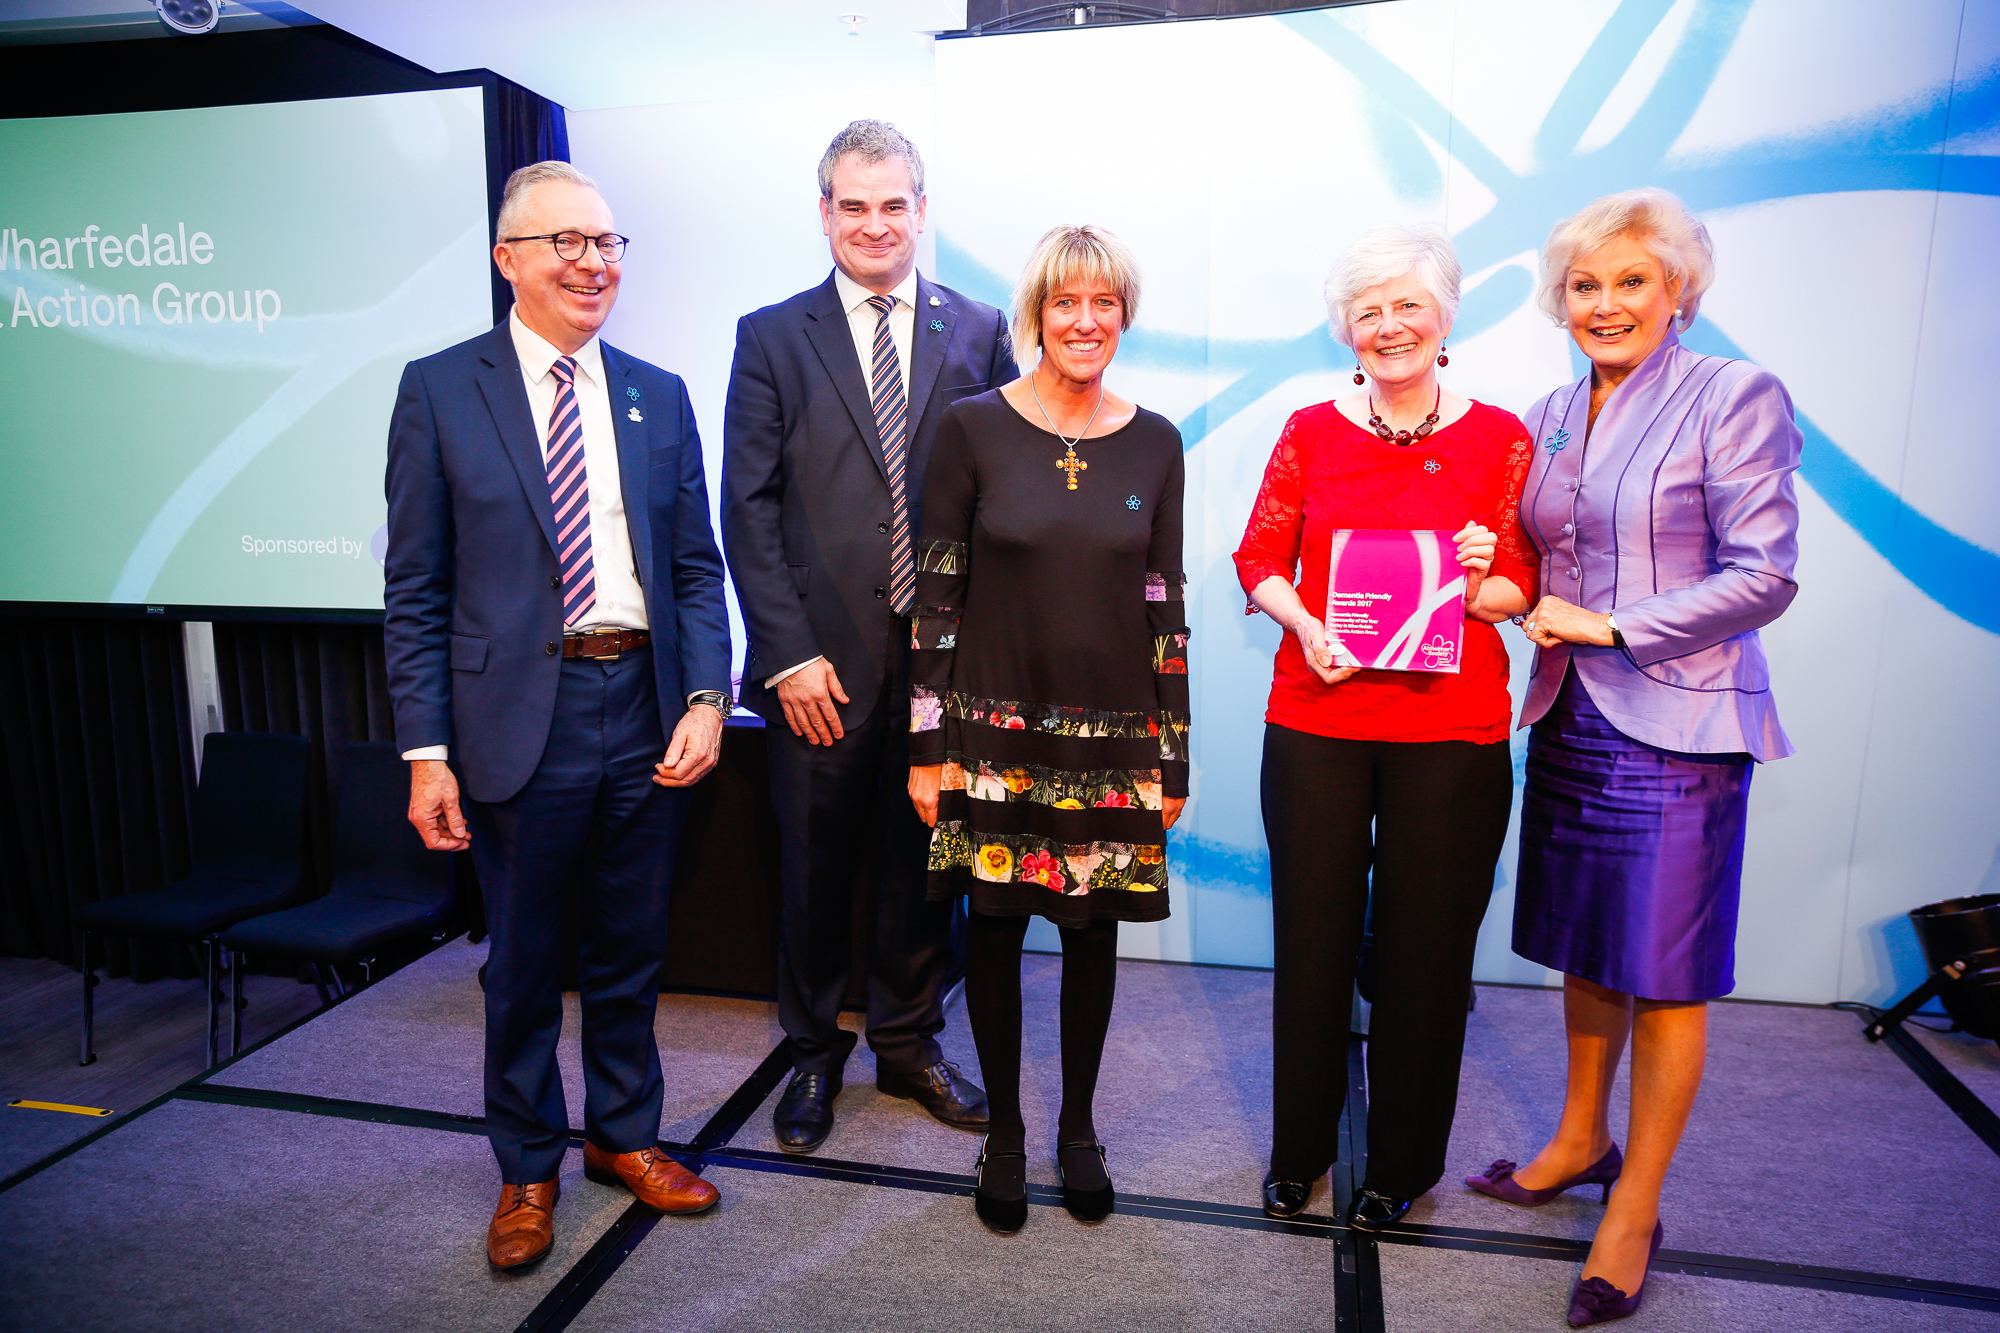 L-R: Jeremy Hughes, Alzheimer's Society CEO, Marc Donovan, Chief Pharmacist, Boots UK, Susan Collins and Sylvia Burgen of Burley Dementia Action Group and Angela Rippon CBE, Alzheimer's Society Ambassador